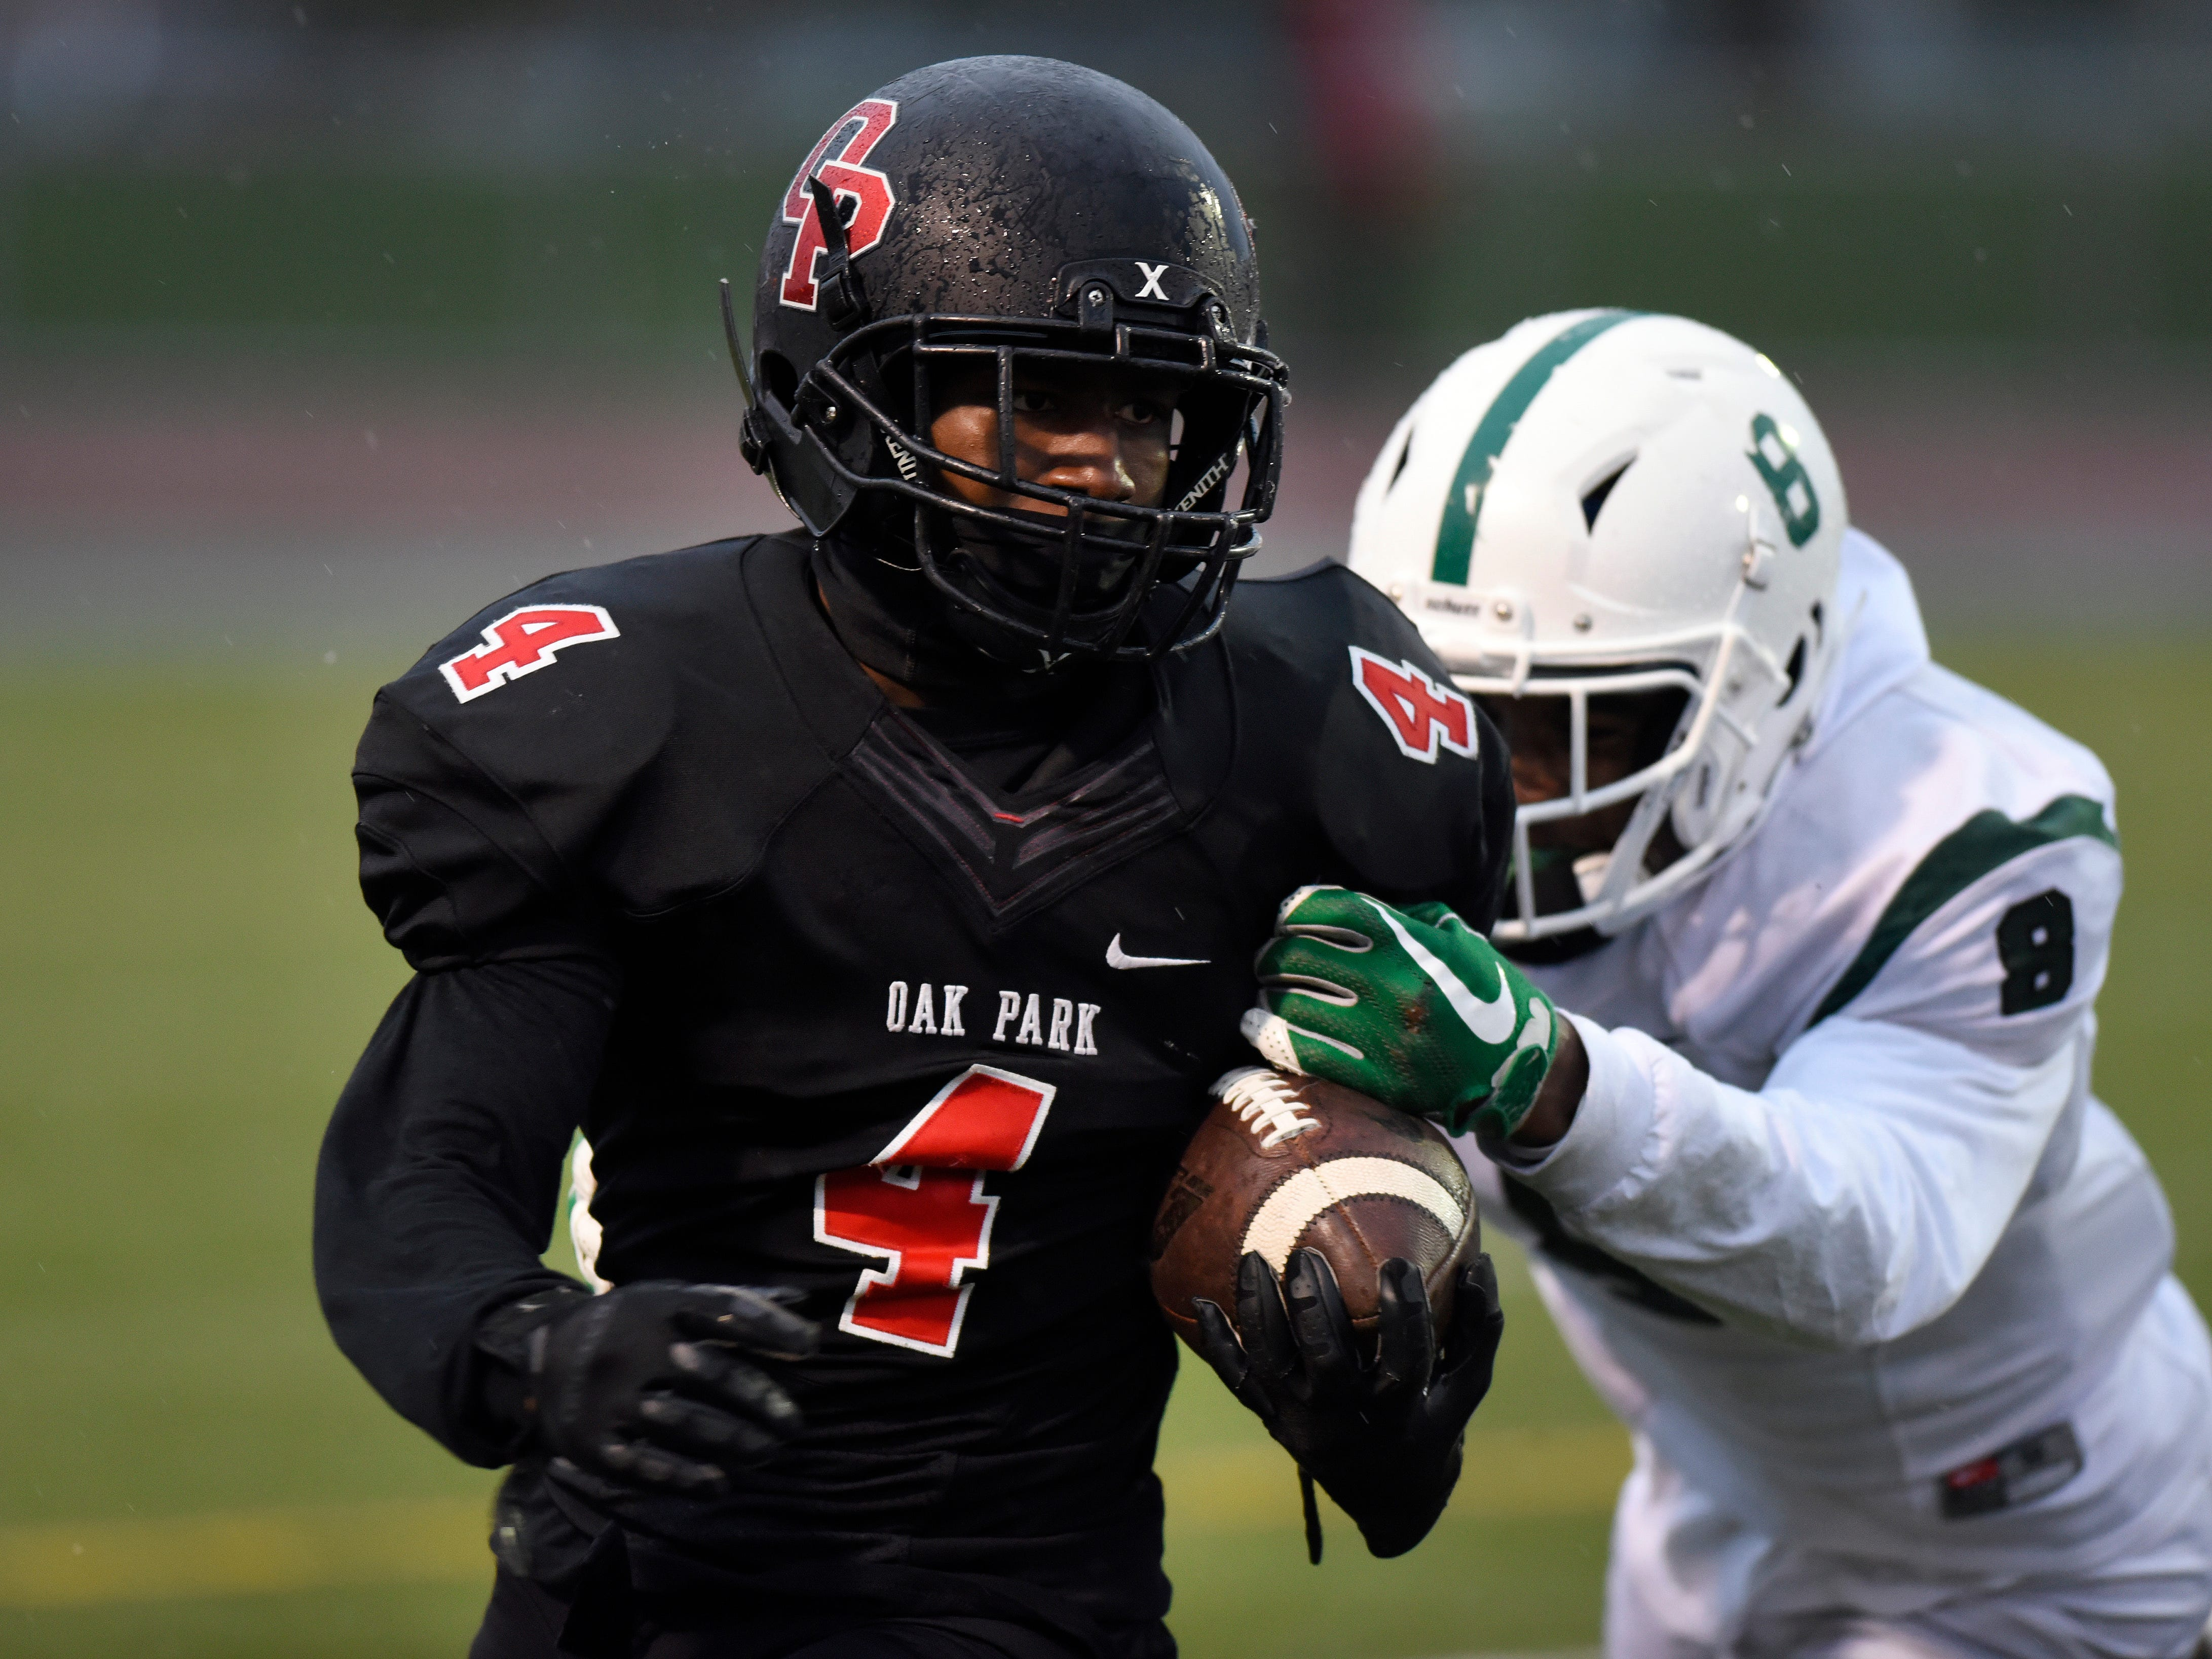 Oak Park running back Phillip Stewart (4) runs for yardage as he is tackled by West Bloomfield safety Makari Paige (8) during the first quarter.